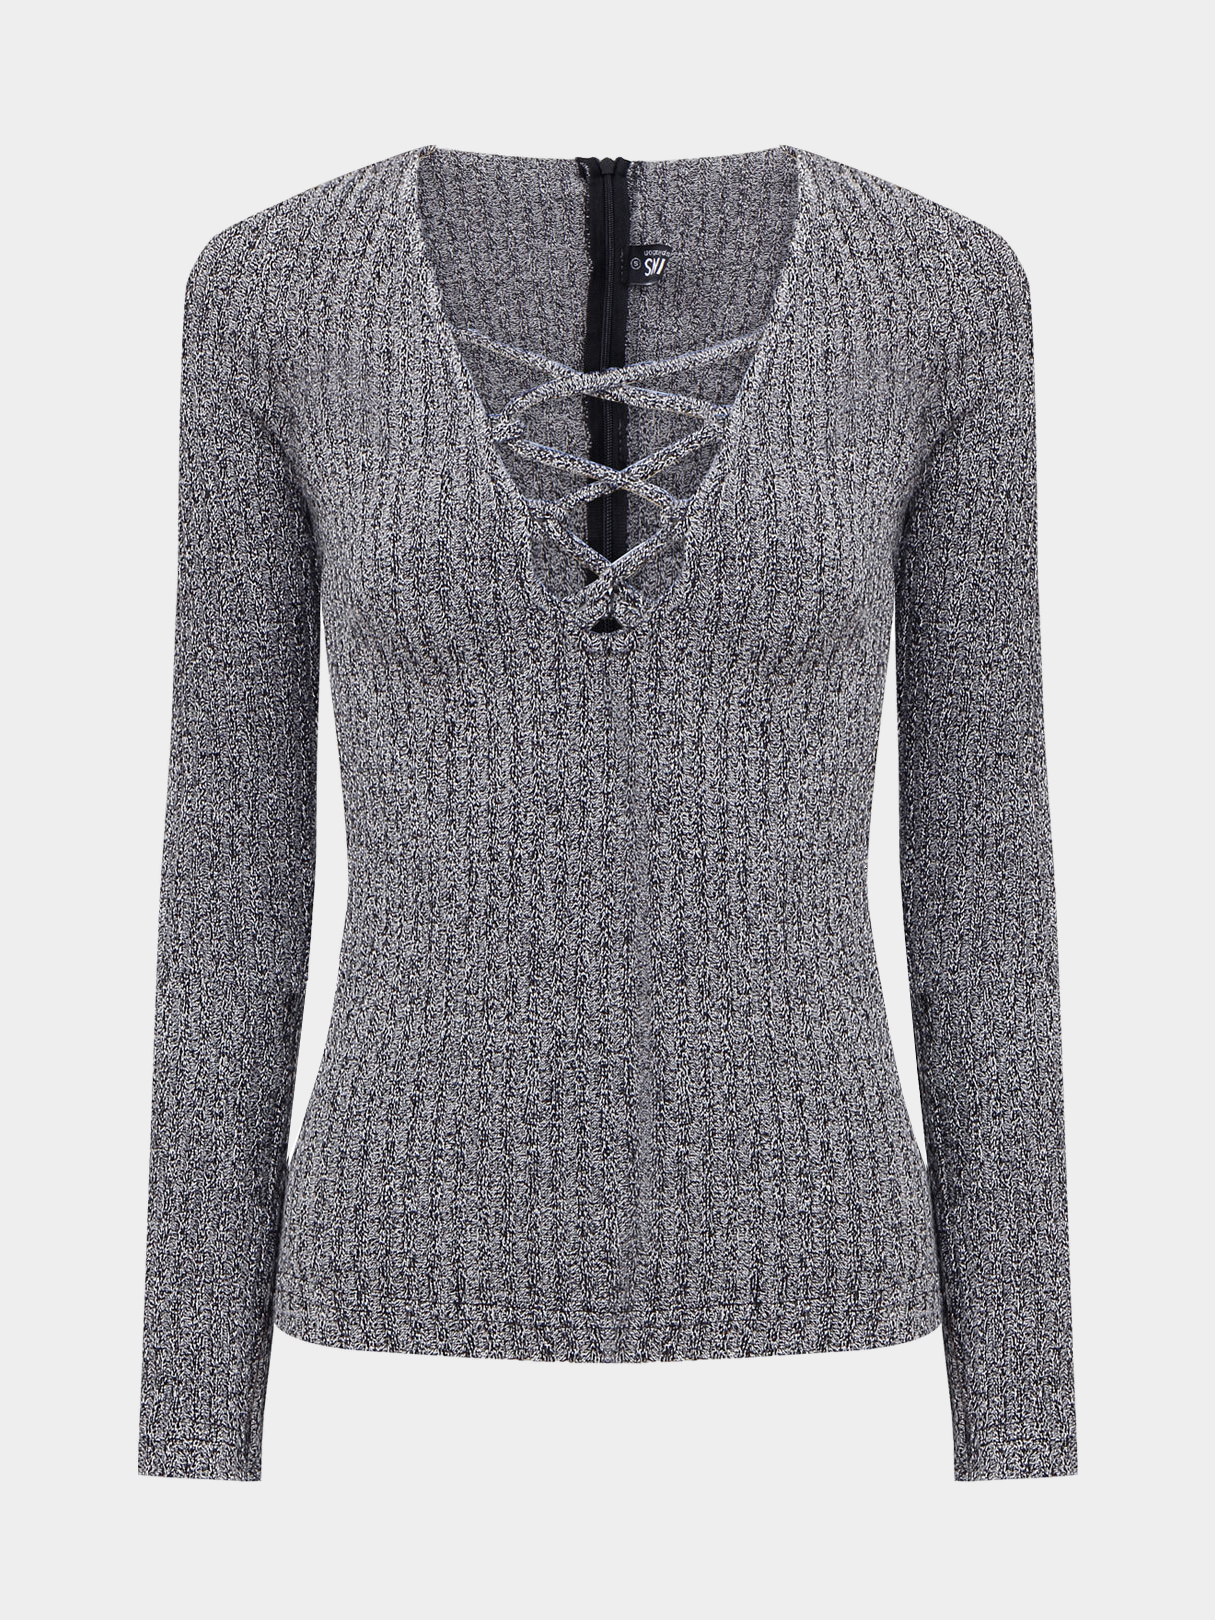 Charcoal Lace-up sweater